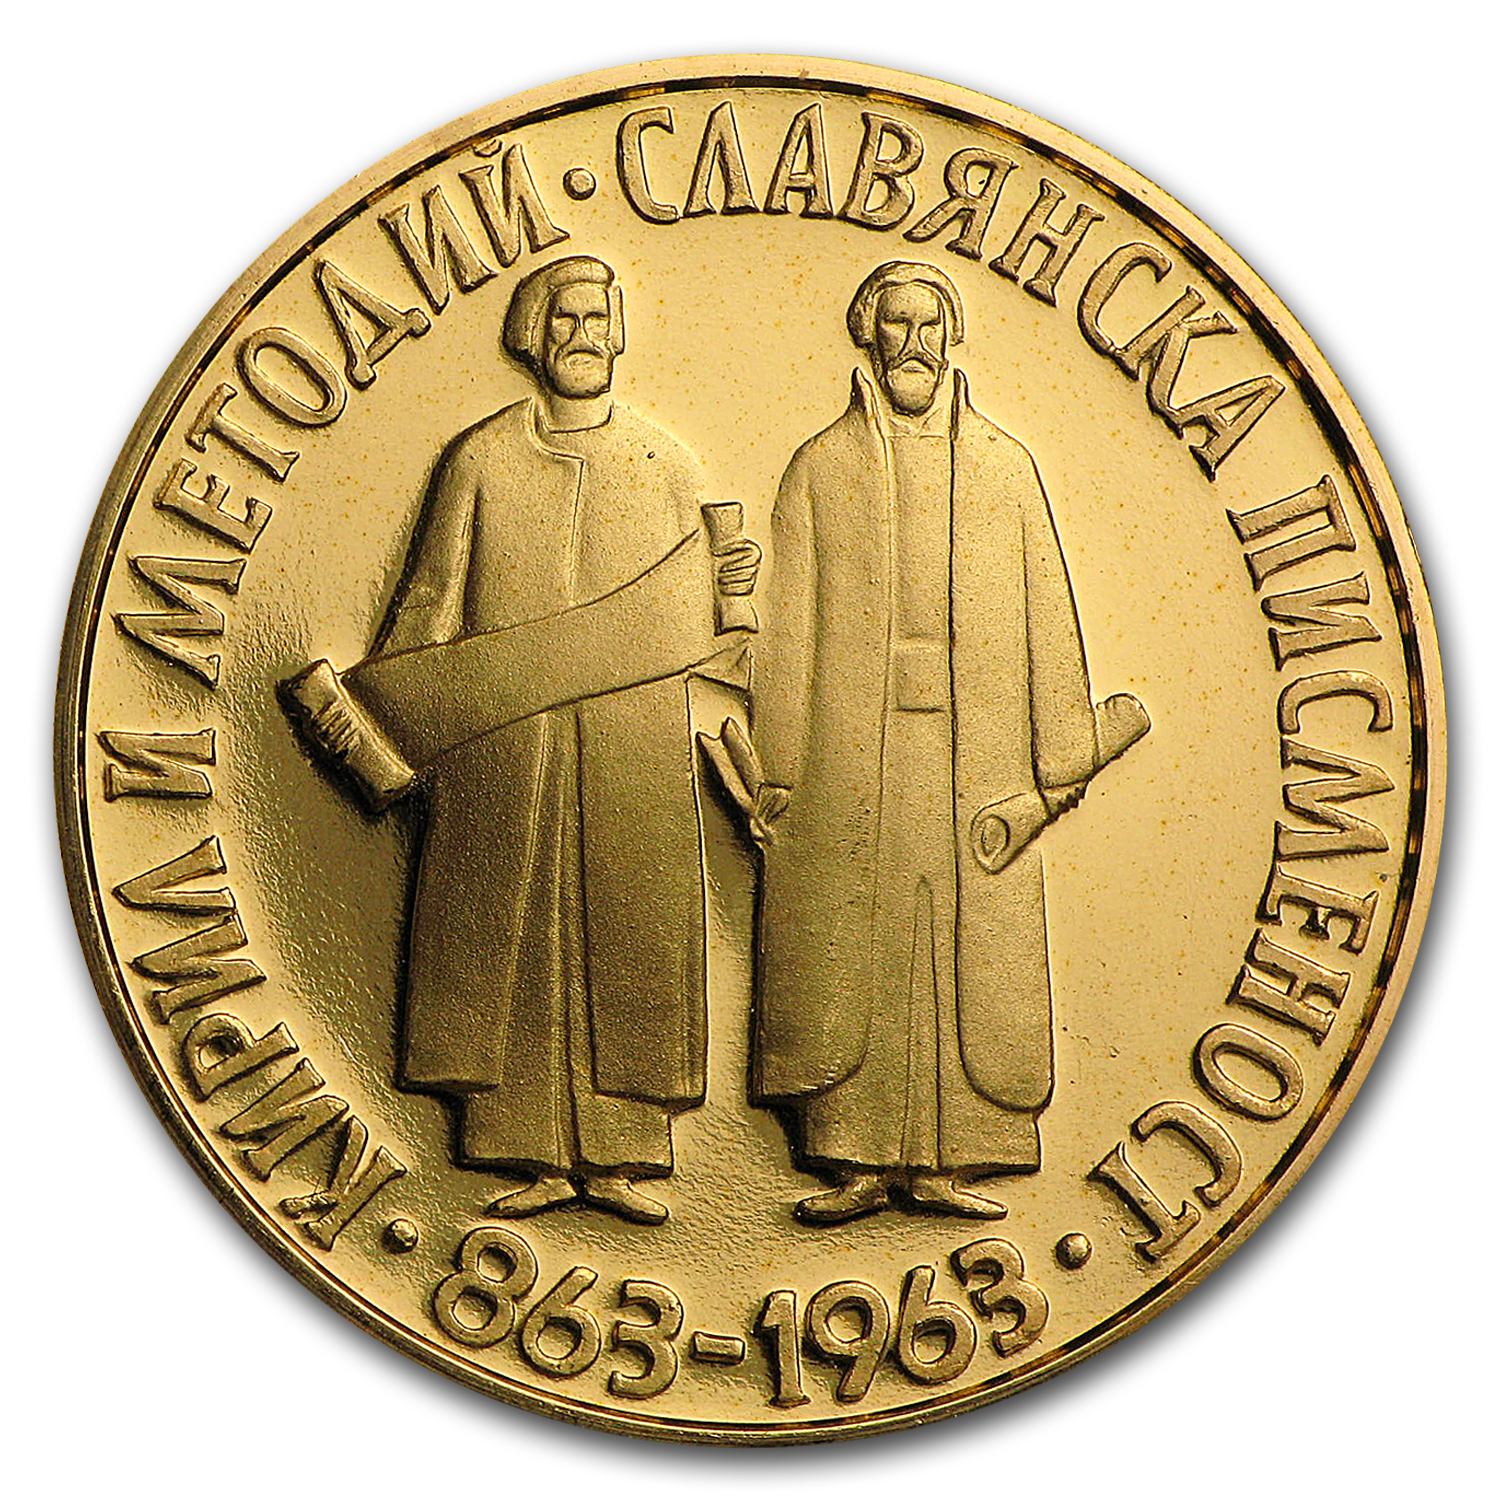 1963 Bulgaria Gold 10 Leva 1100th Anniv of Slavic Alphabet Proof